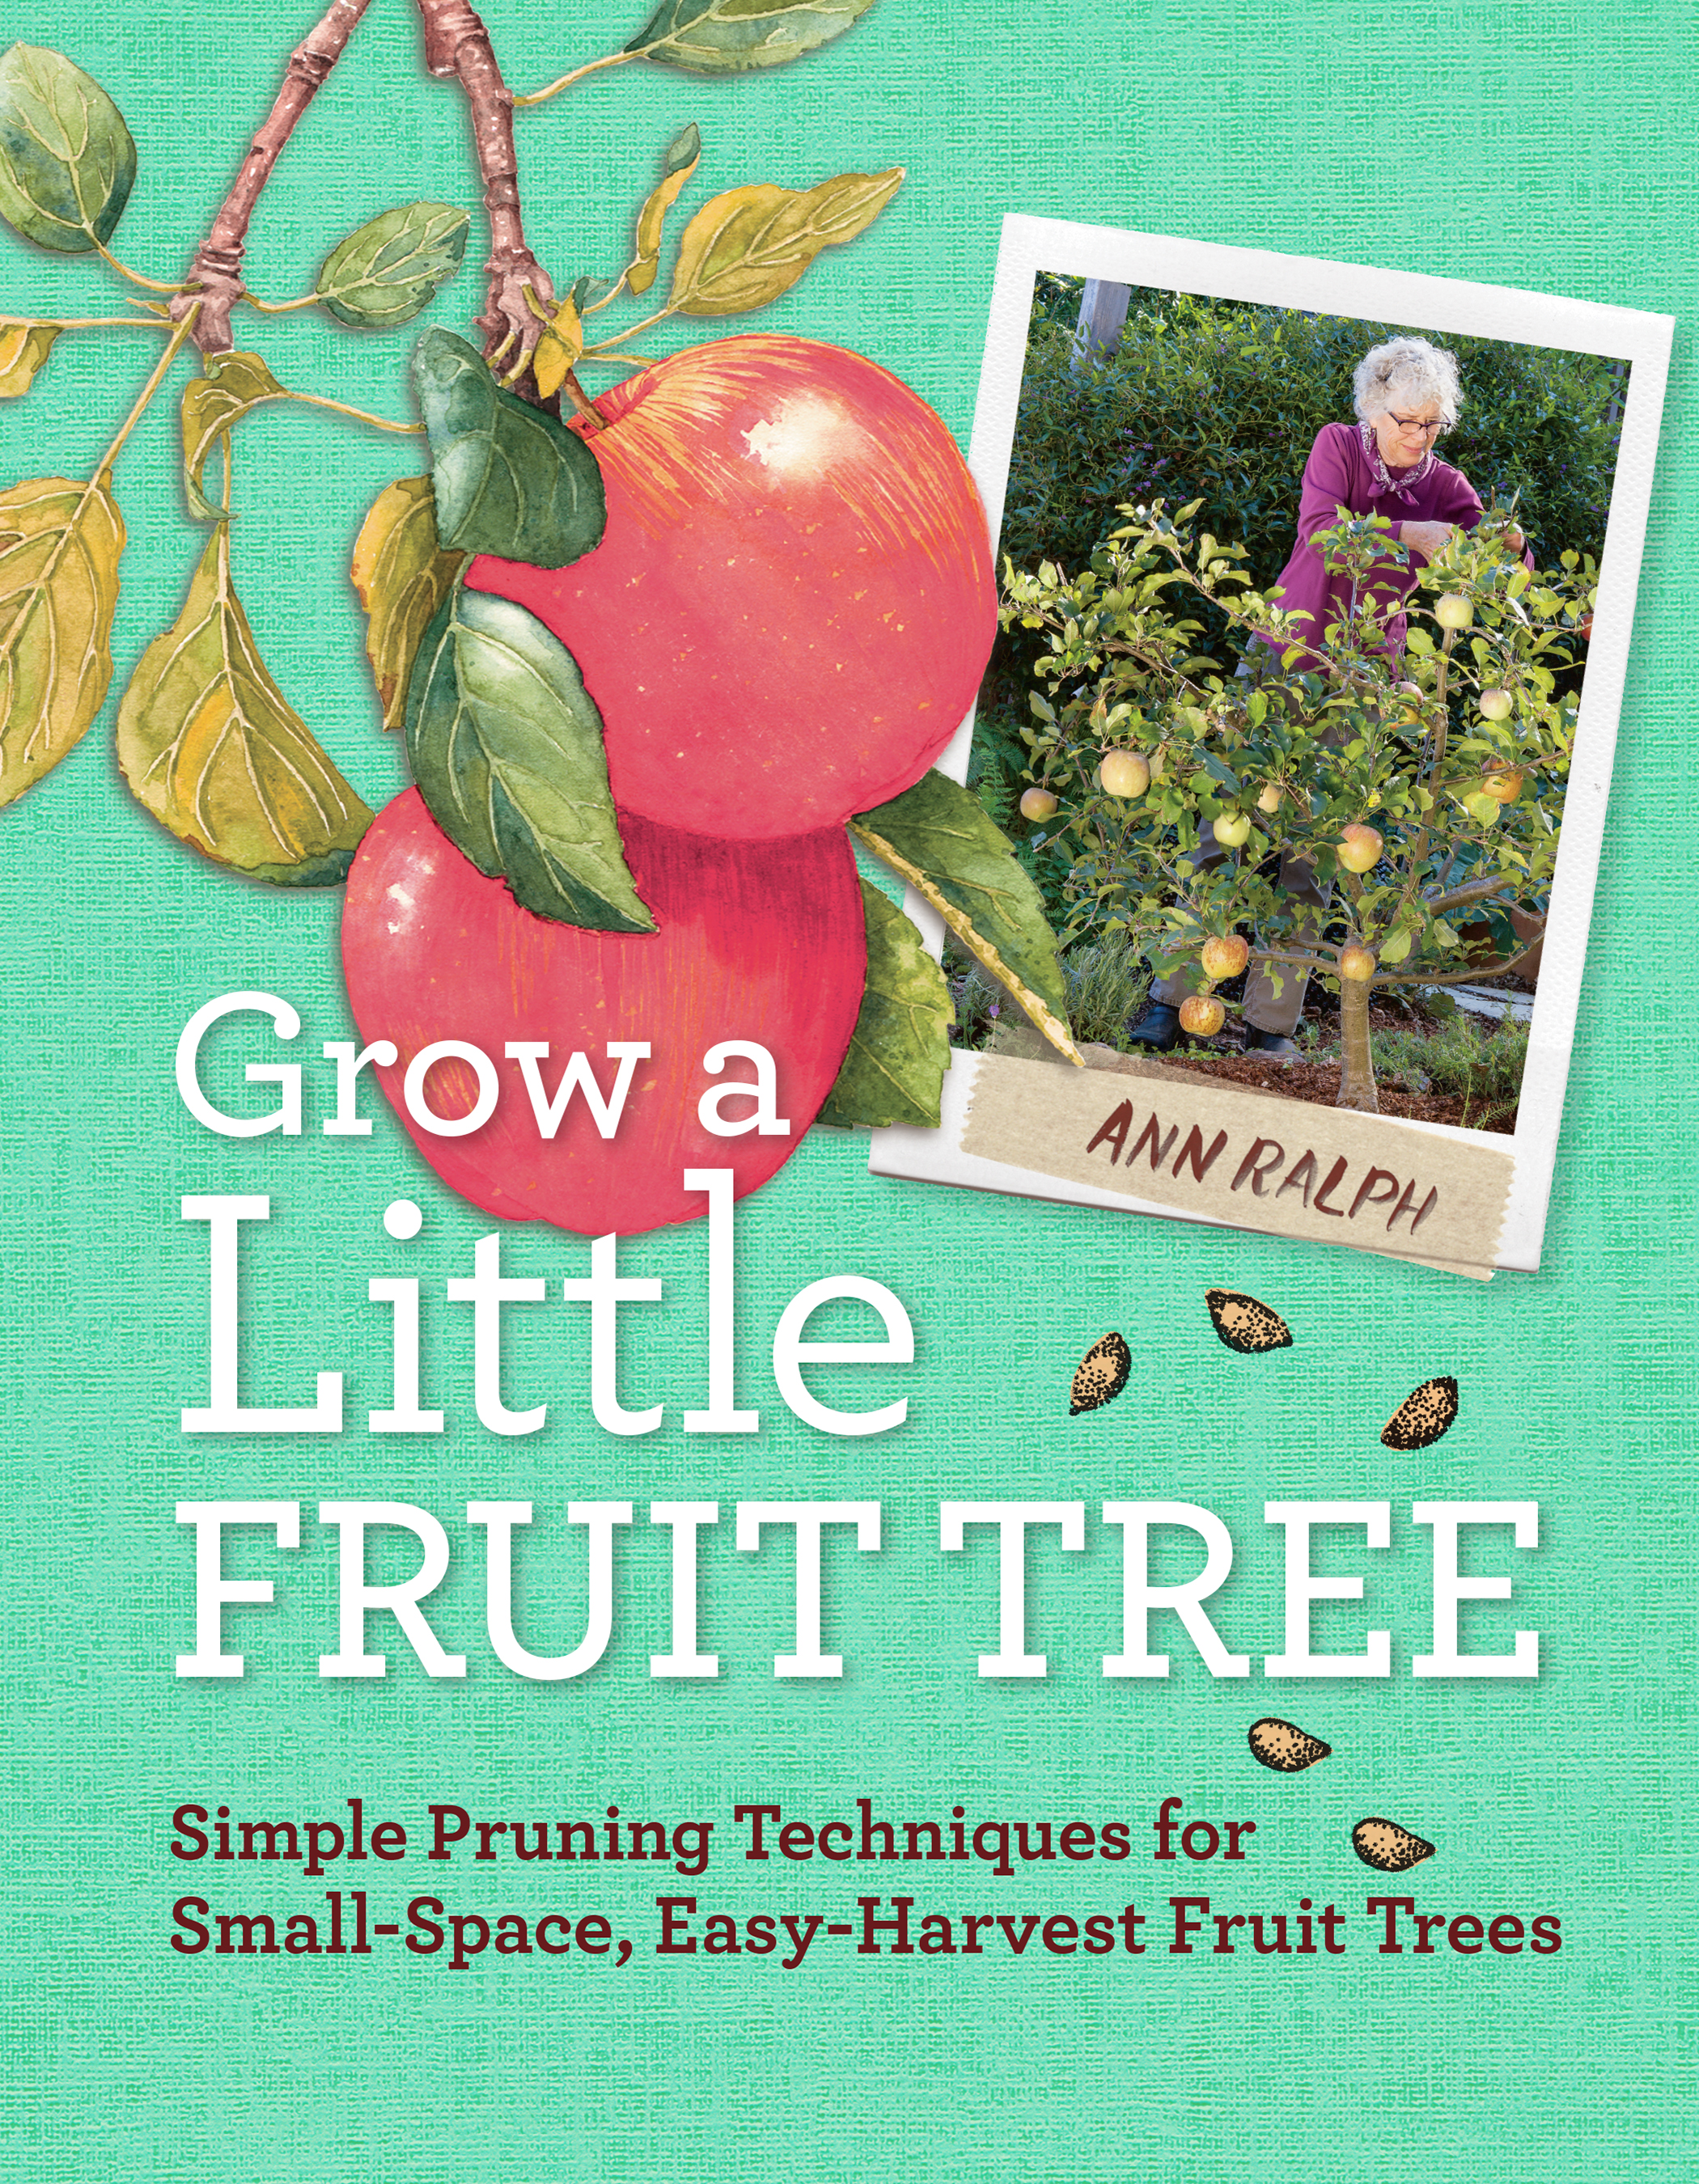 Grow a Little Fruit Tree Simple Pruning Techniques for Small-Space, Easy-Harvest Fruit Trees